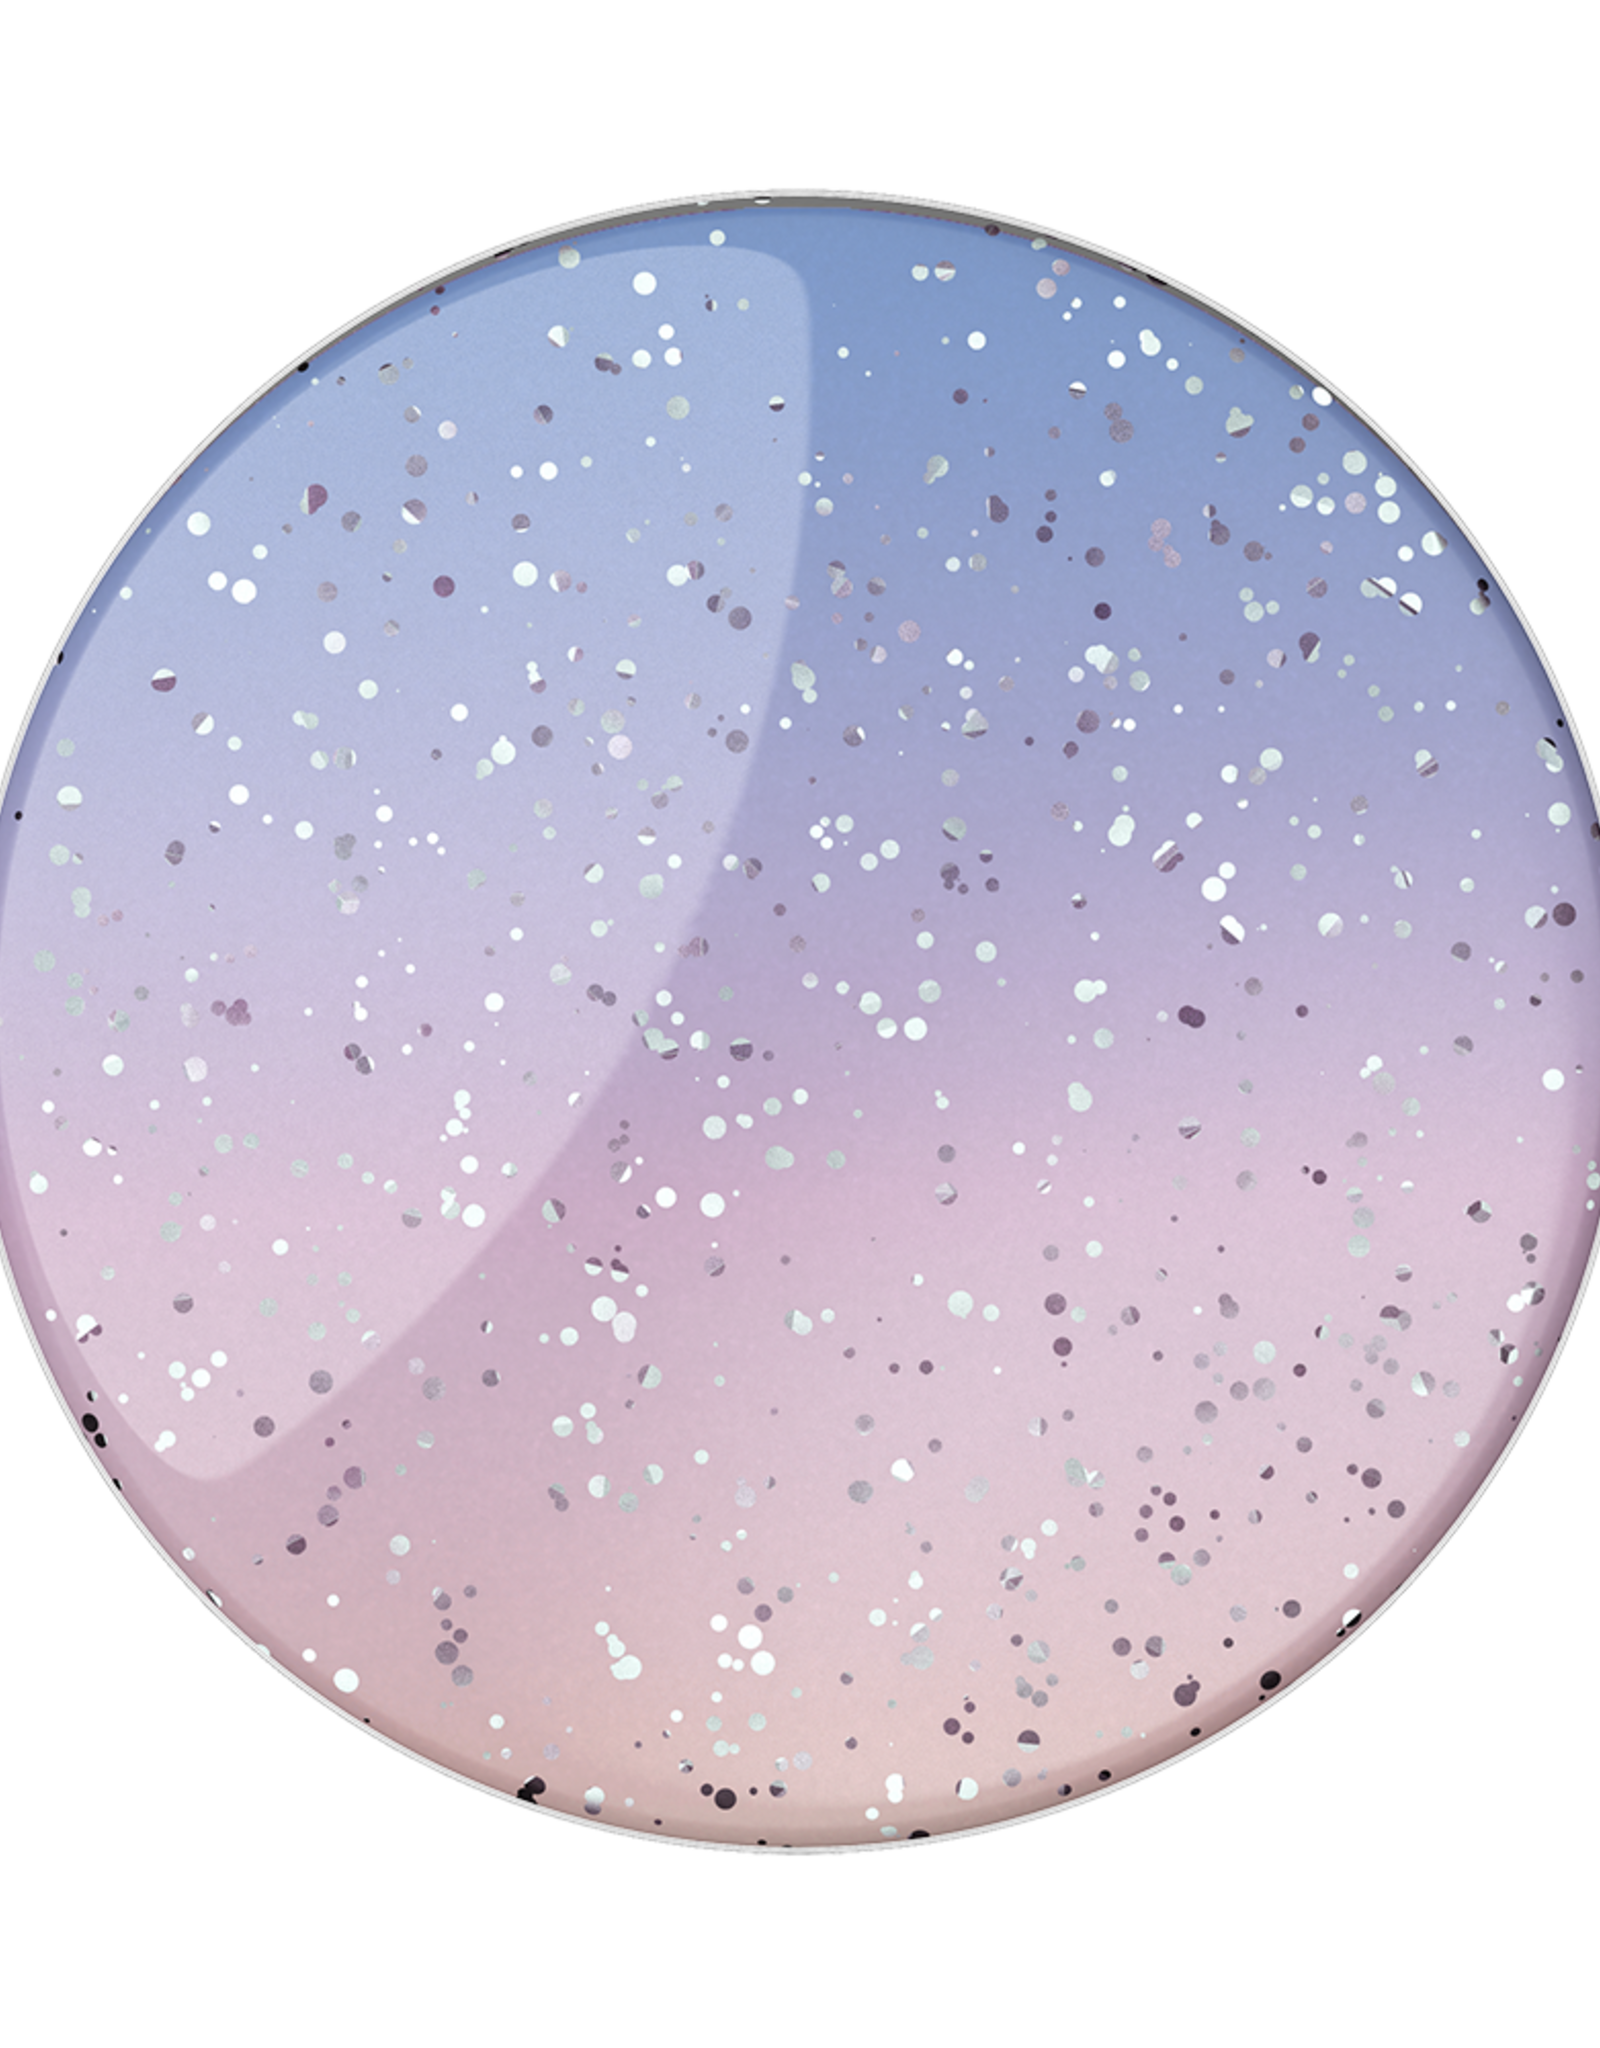 Popsockets PopSockets | PopGrip (Complete Swappable PopGrip) Glitter Morning Haze | 115-1879